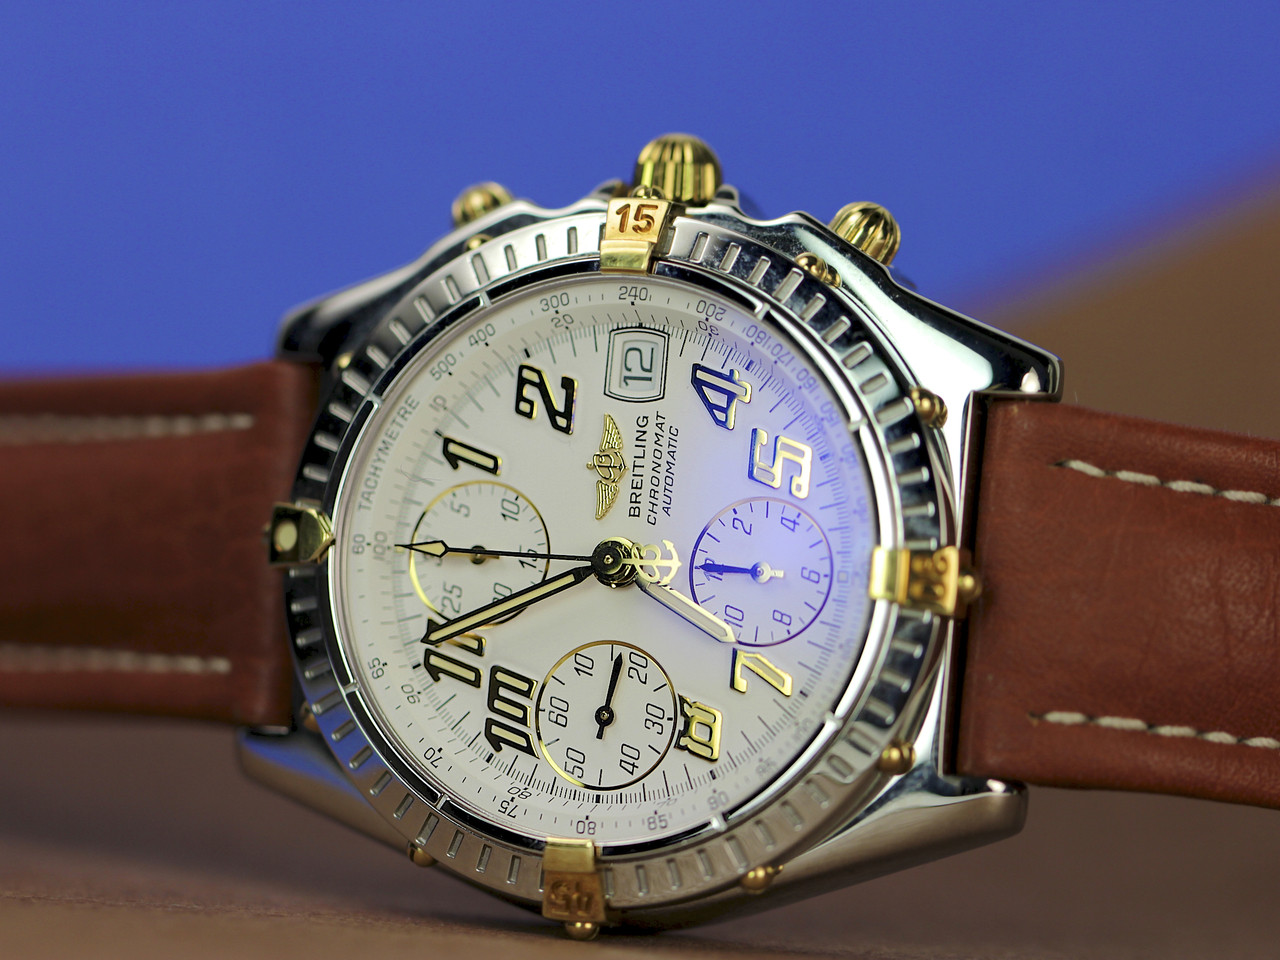 For sale pre-owned Breitling Watch - Chronomat 18kt/Steel b13050.1 available online and in store www.Legendoftime.com - Chicago Watch Center